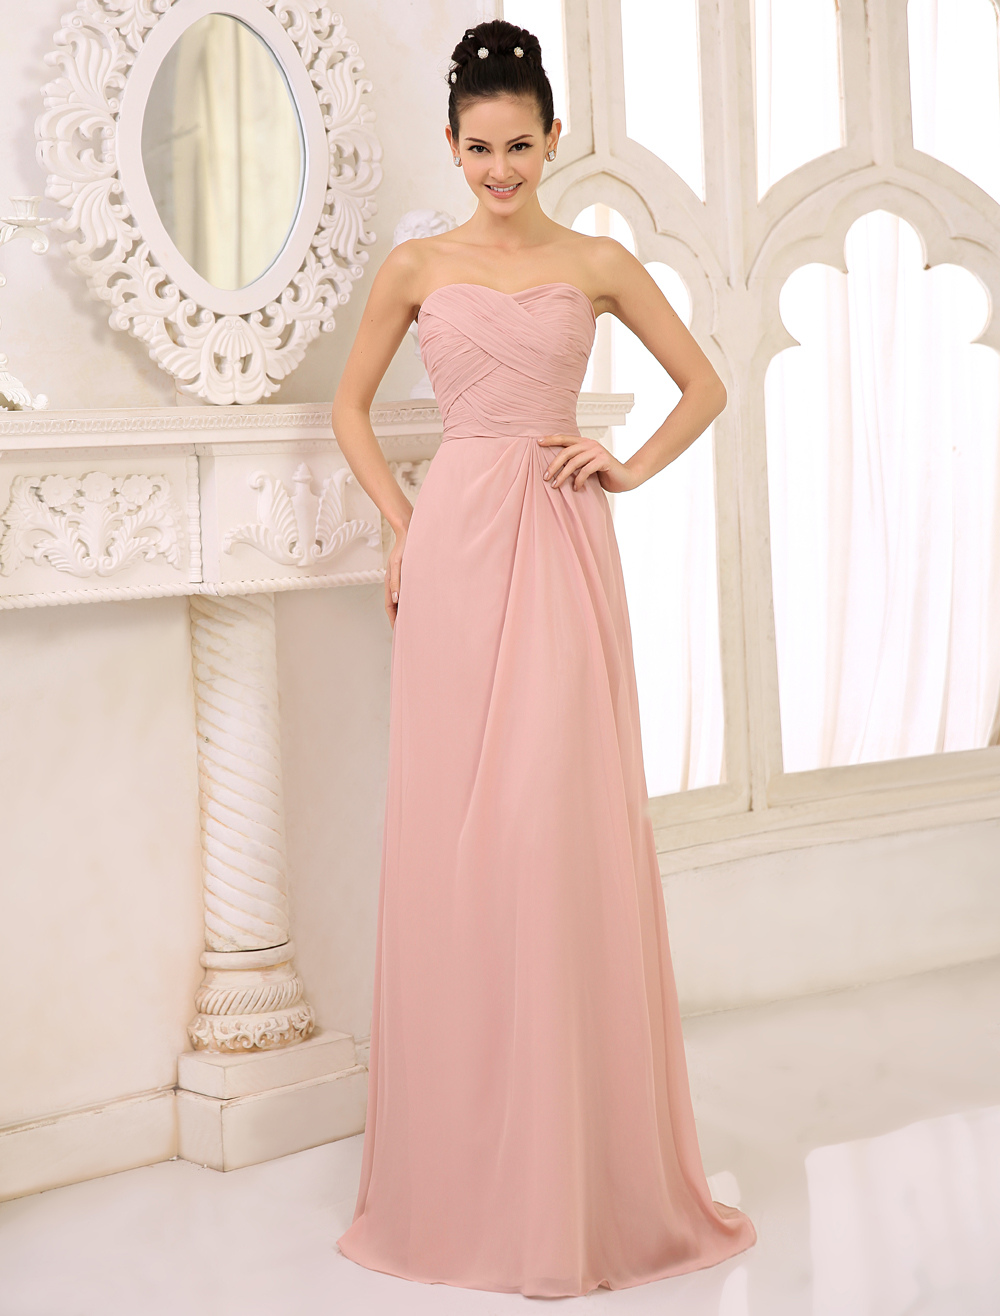 Bridesmaid Dresses Long Blush Pink Strapless Wedding Party Dress Pleated Floor Length Evening Gowns